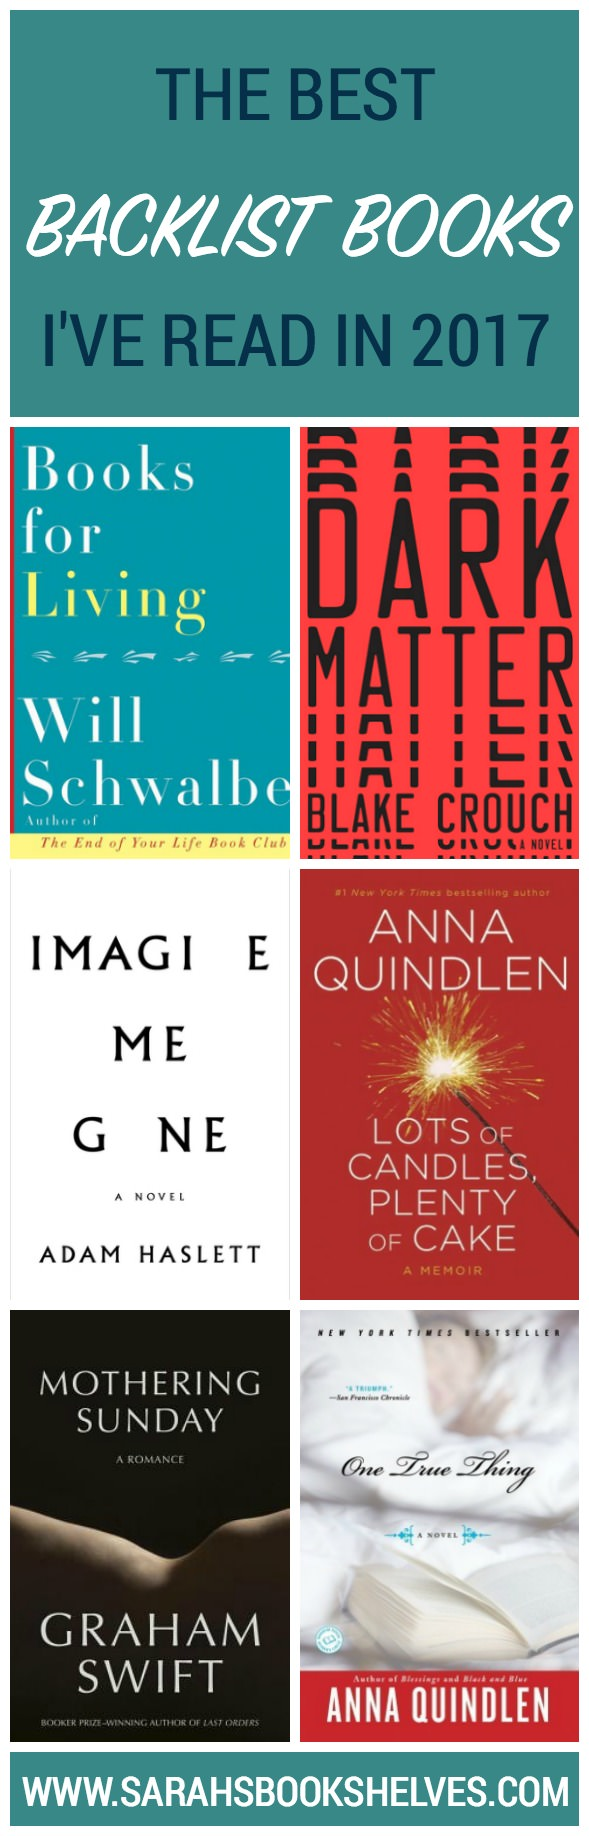 Backlist Beauties: The Best Backlist Books I've Read in 2017 So Far #book #bookish #bookworms #booklovers #reading #bestbooksof2017